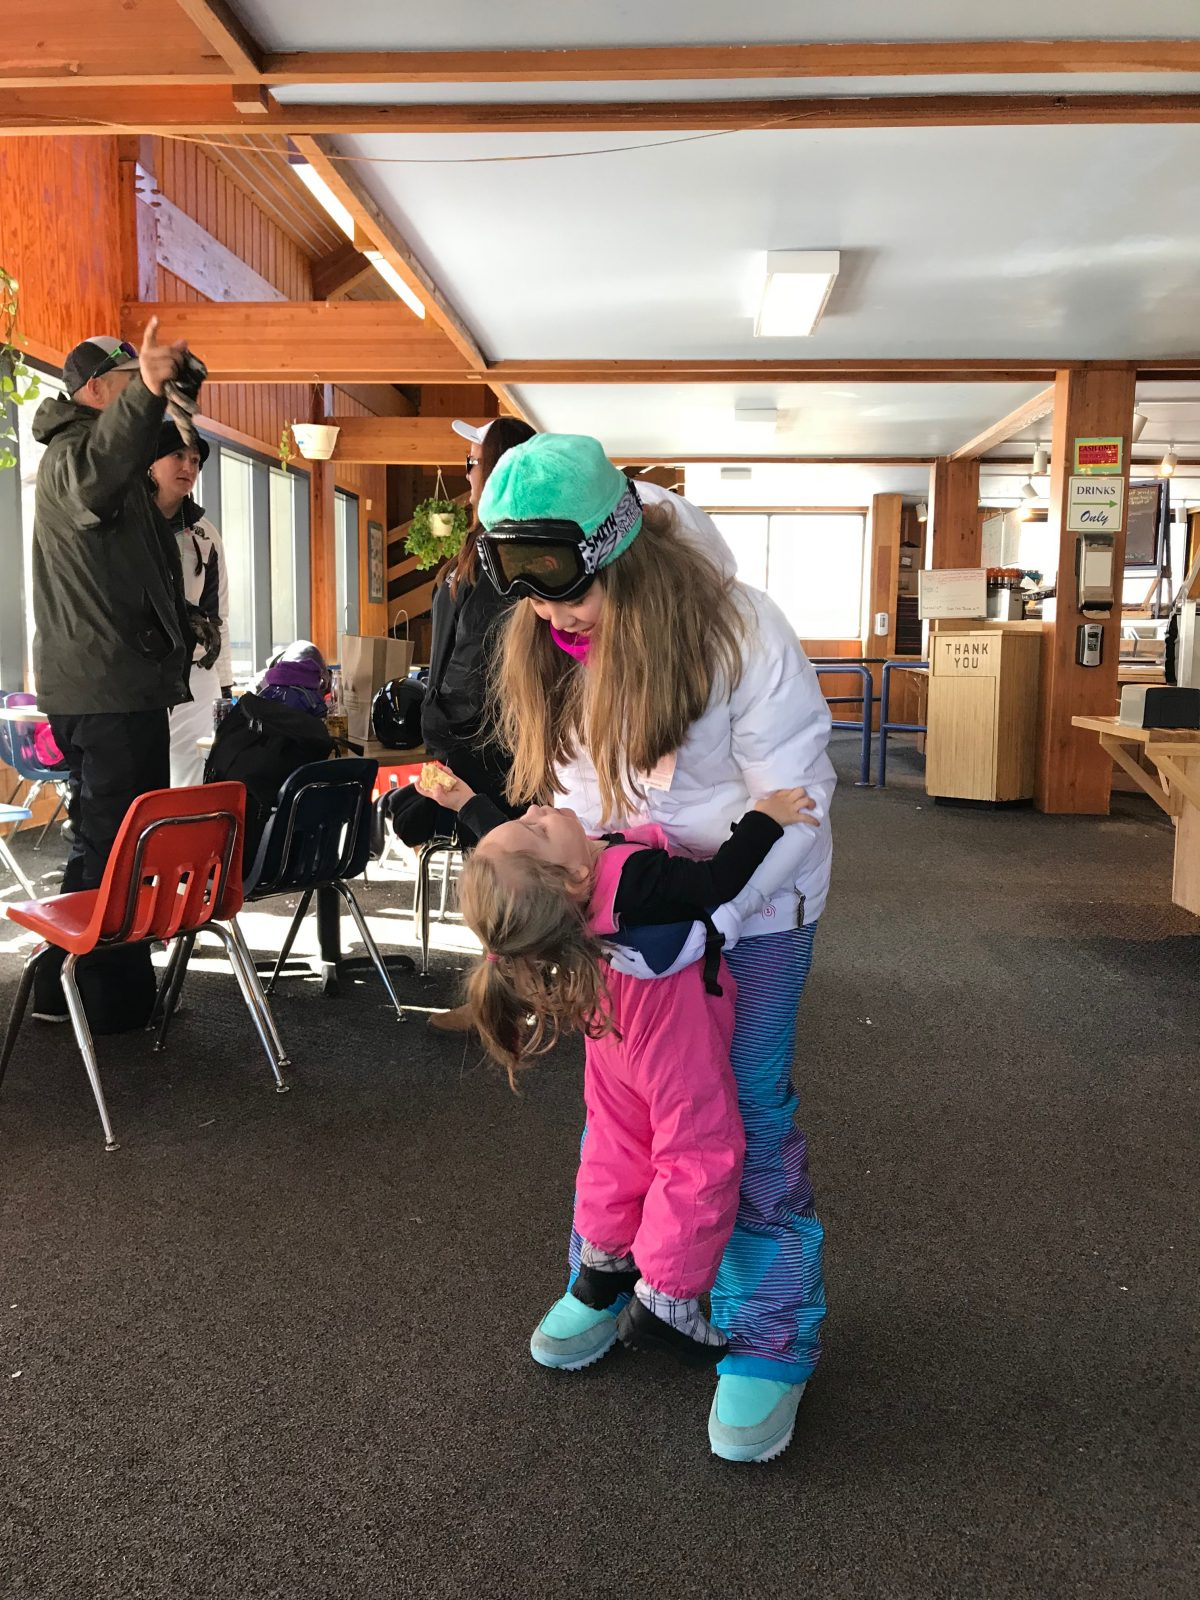 Family ski trip with toddler - ski lodge